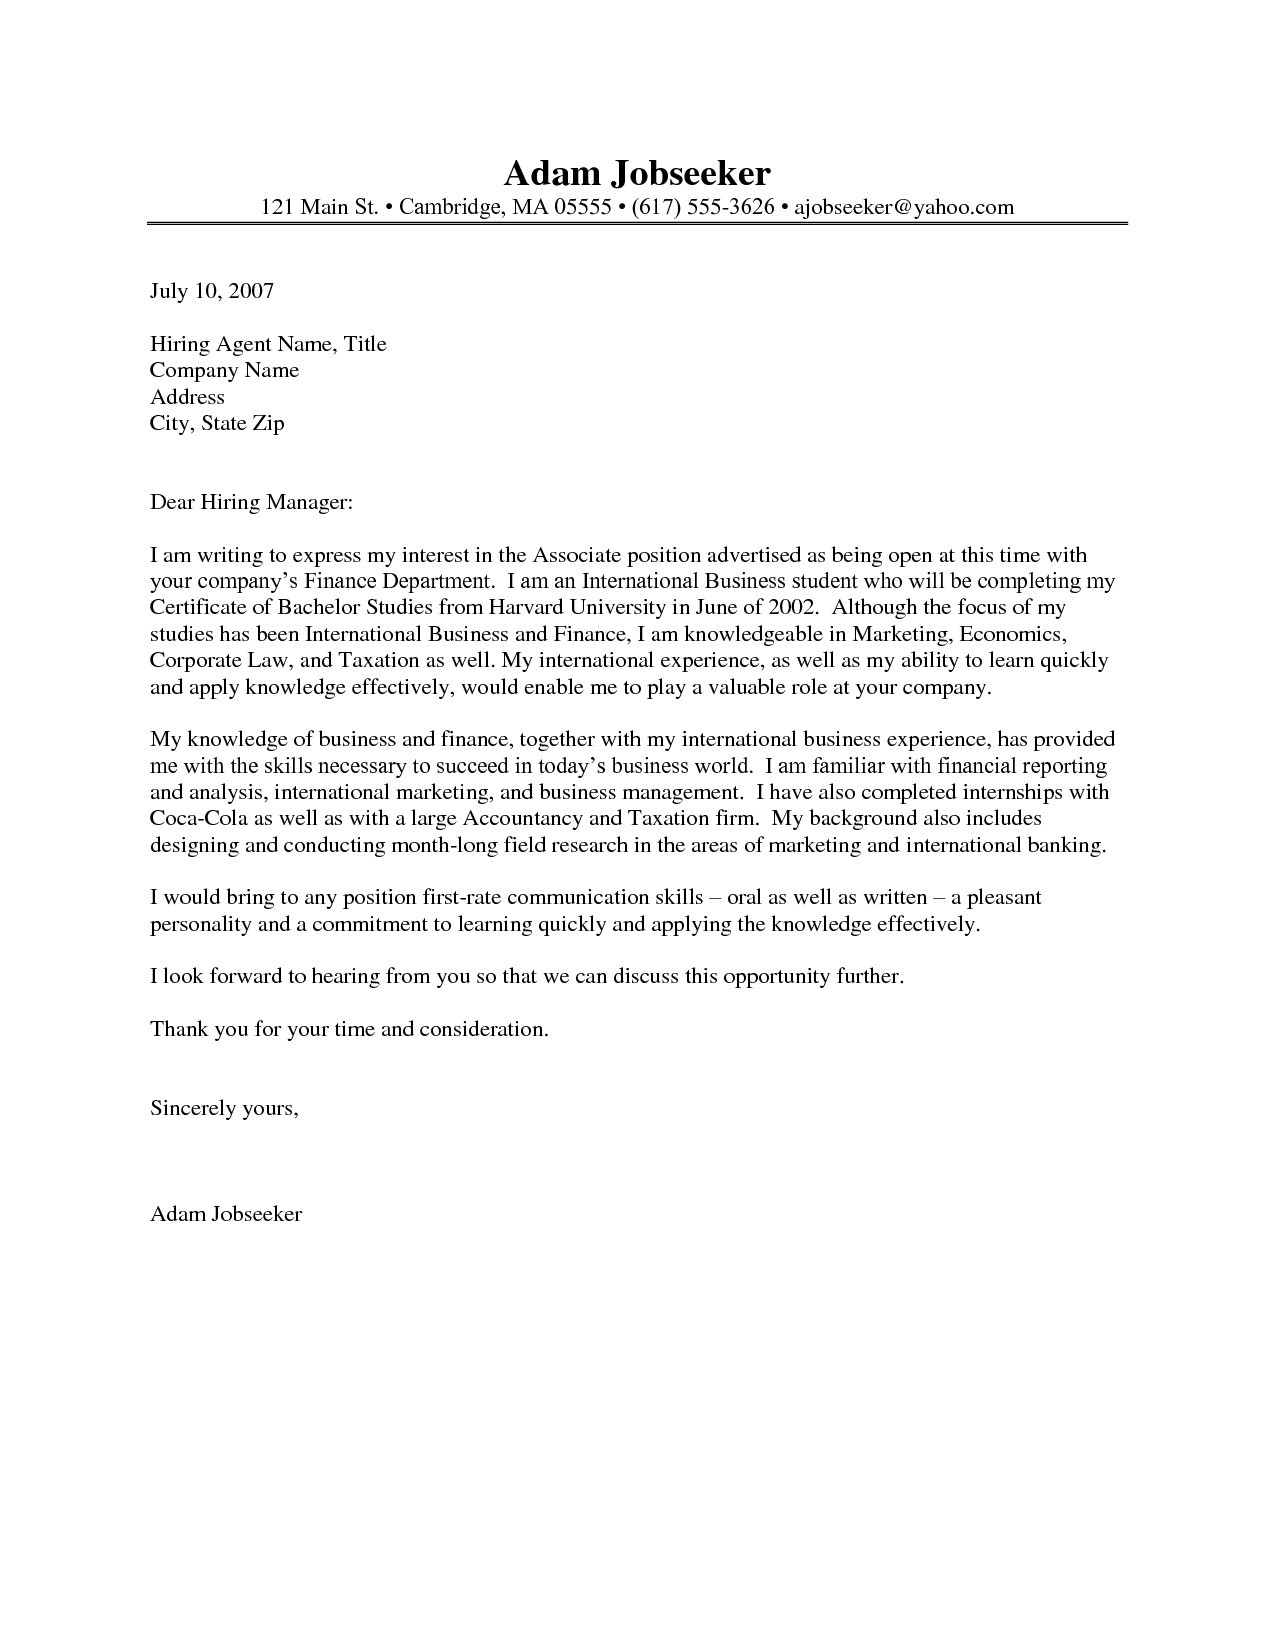 Generic Letter Of Recommendation Template - Cover Letter Examples for Internship Fresh Cover Letter Examples for